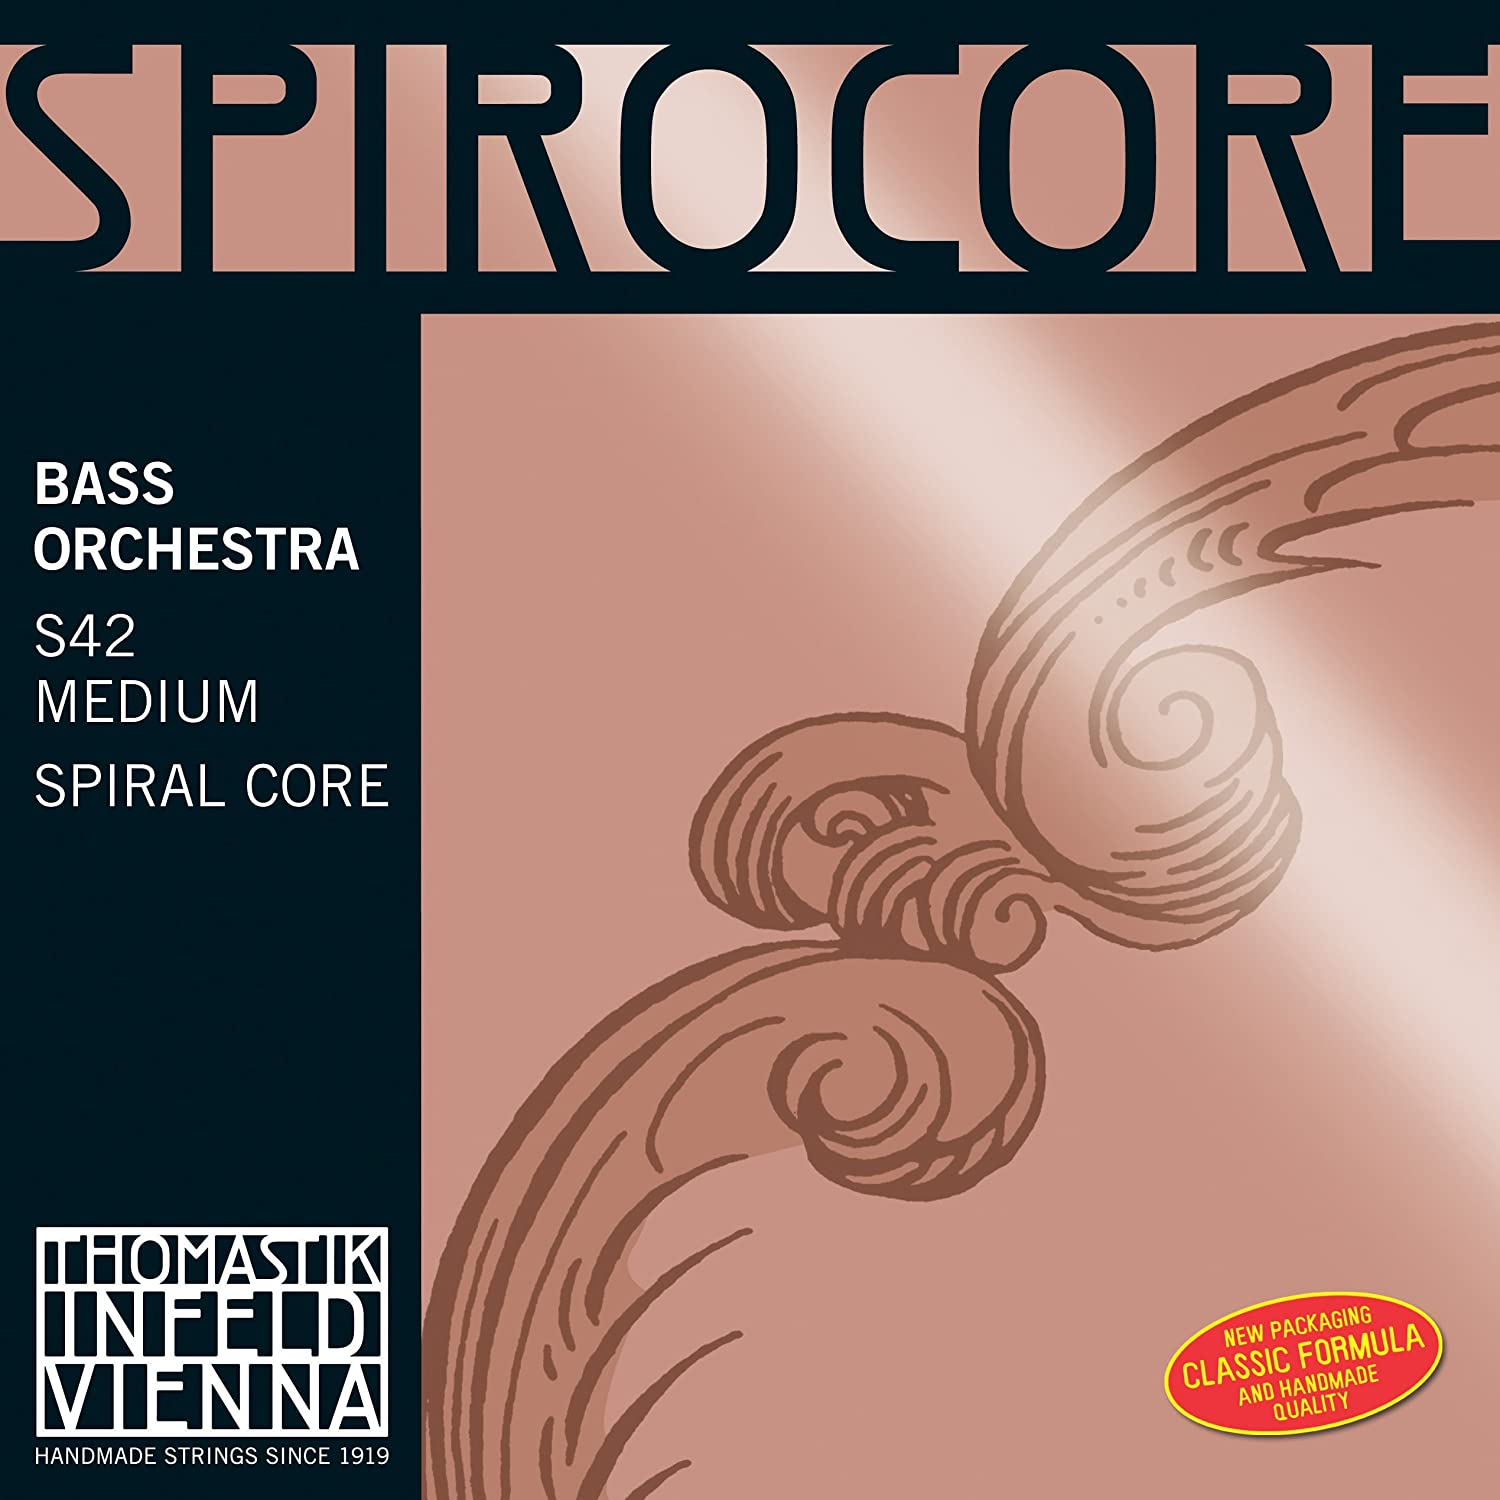 orchestra tuning chrome wound light Thomastik Single string for Double Bass 4//4 Spirocore G-string spiral core